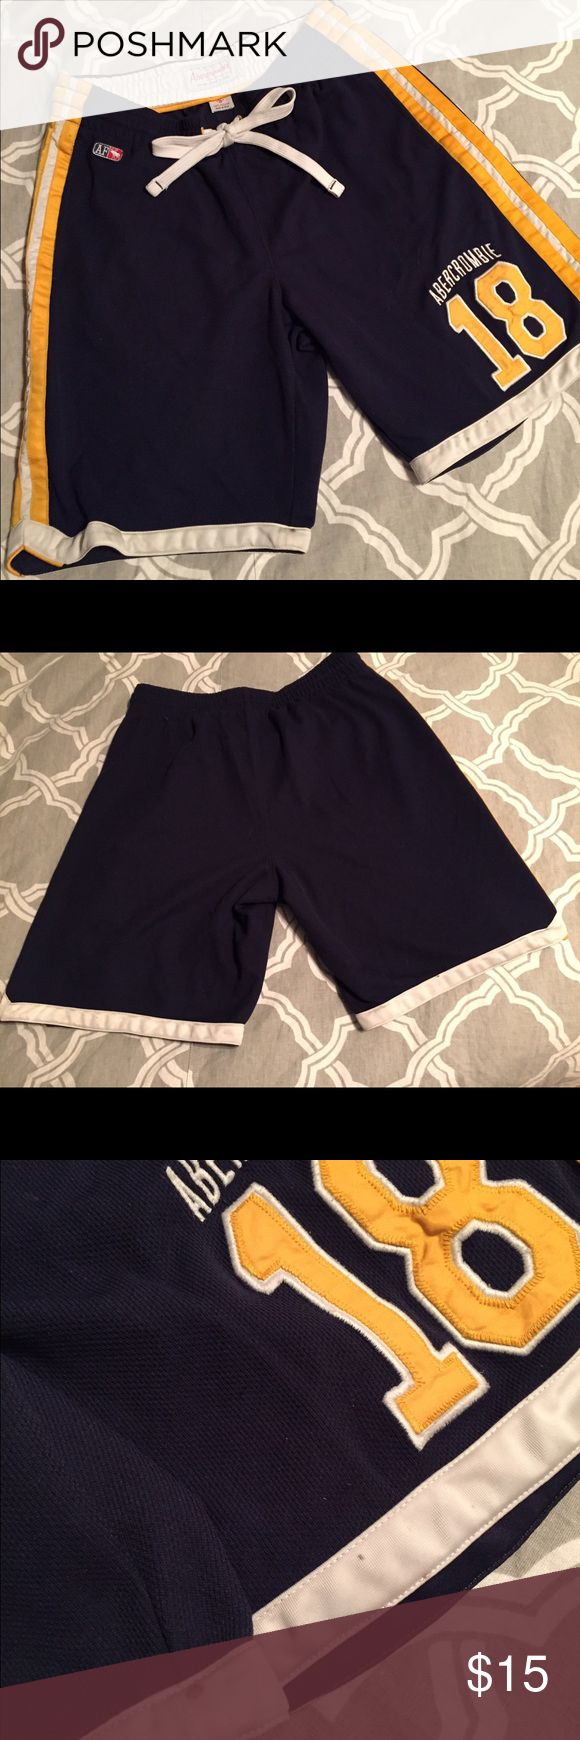 Men's Gym Shorts Navy blue, yellow and white drawstring gym shorts. 100% Polyester, thicker material. Good quality. No holes or rips but does have a few very small dark colored stains on the white and yellow areas as seen in photos #3 and #4. Similar stains noted on bottom white strip on the backside of shorts. Smoke free/pet free home. Abercrombie & Fitch Shorts Athletic